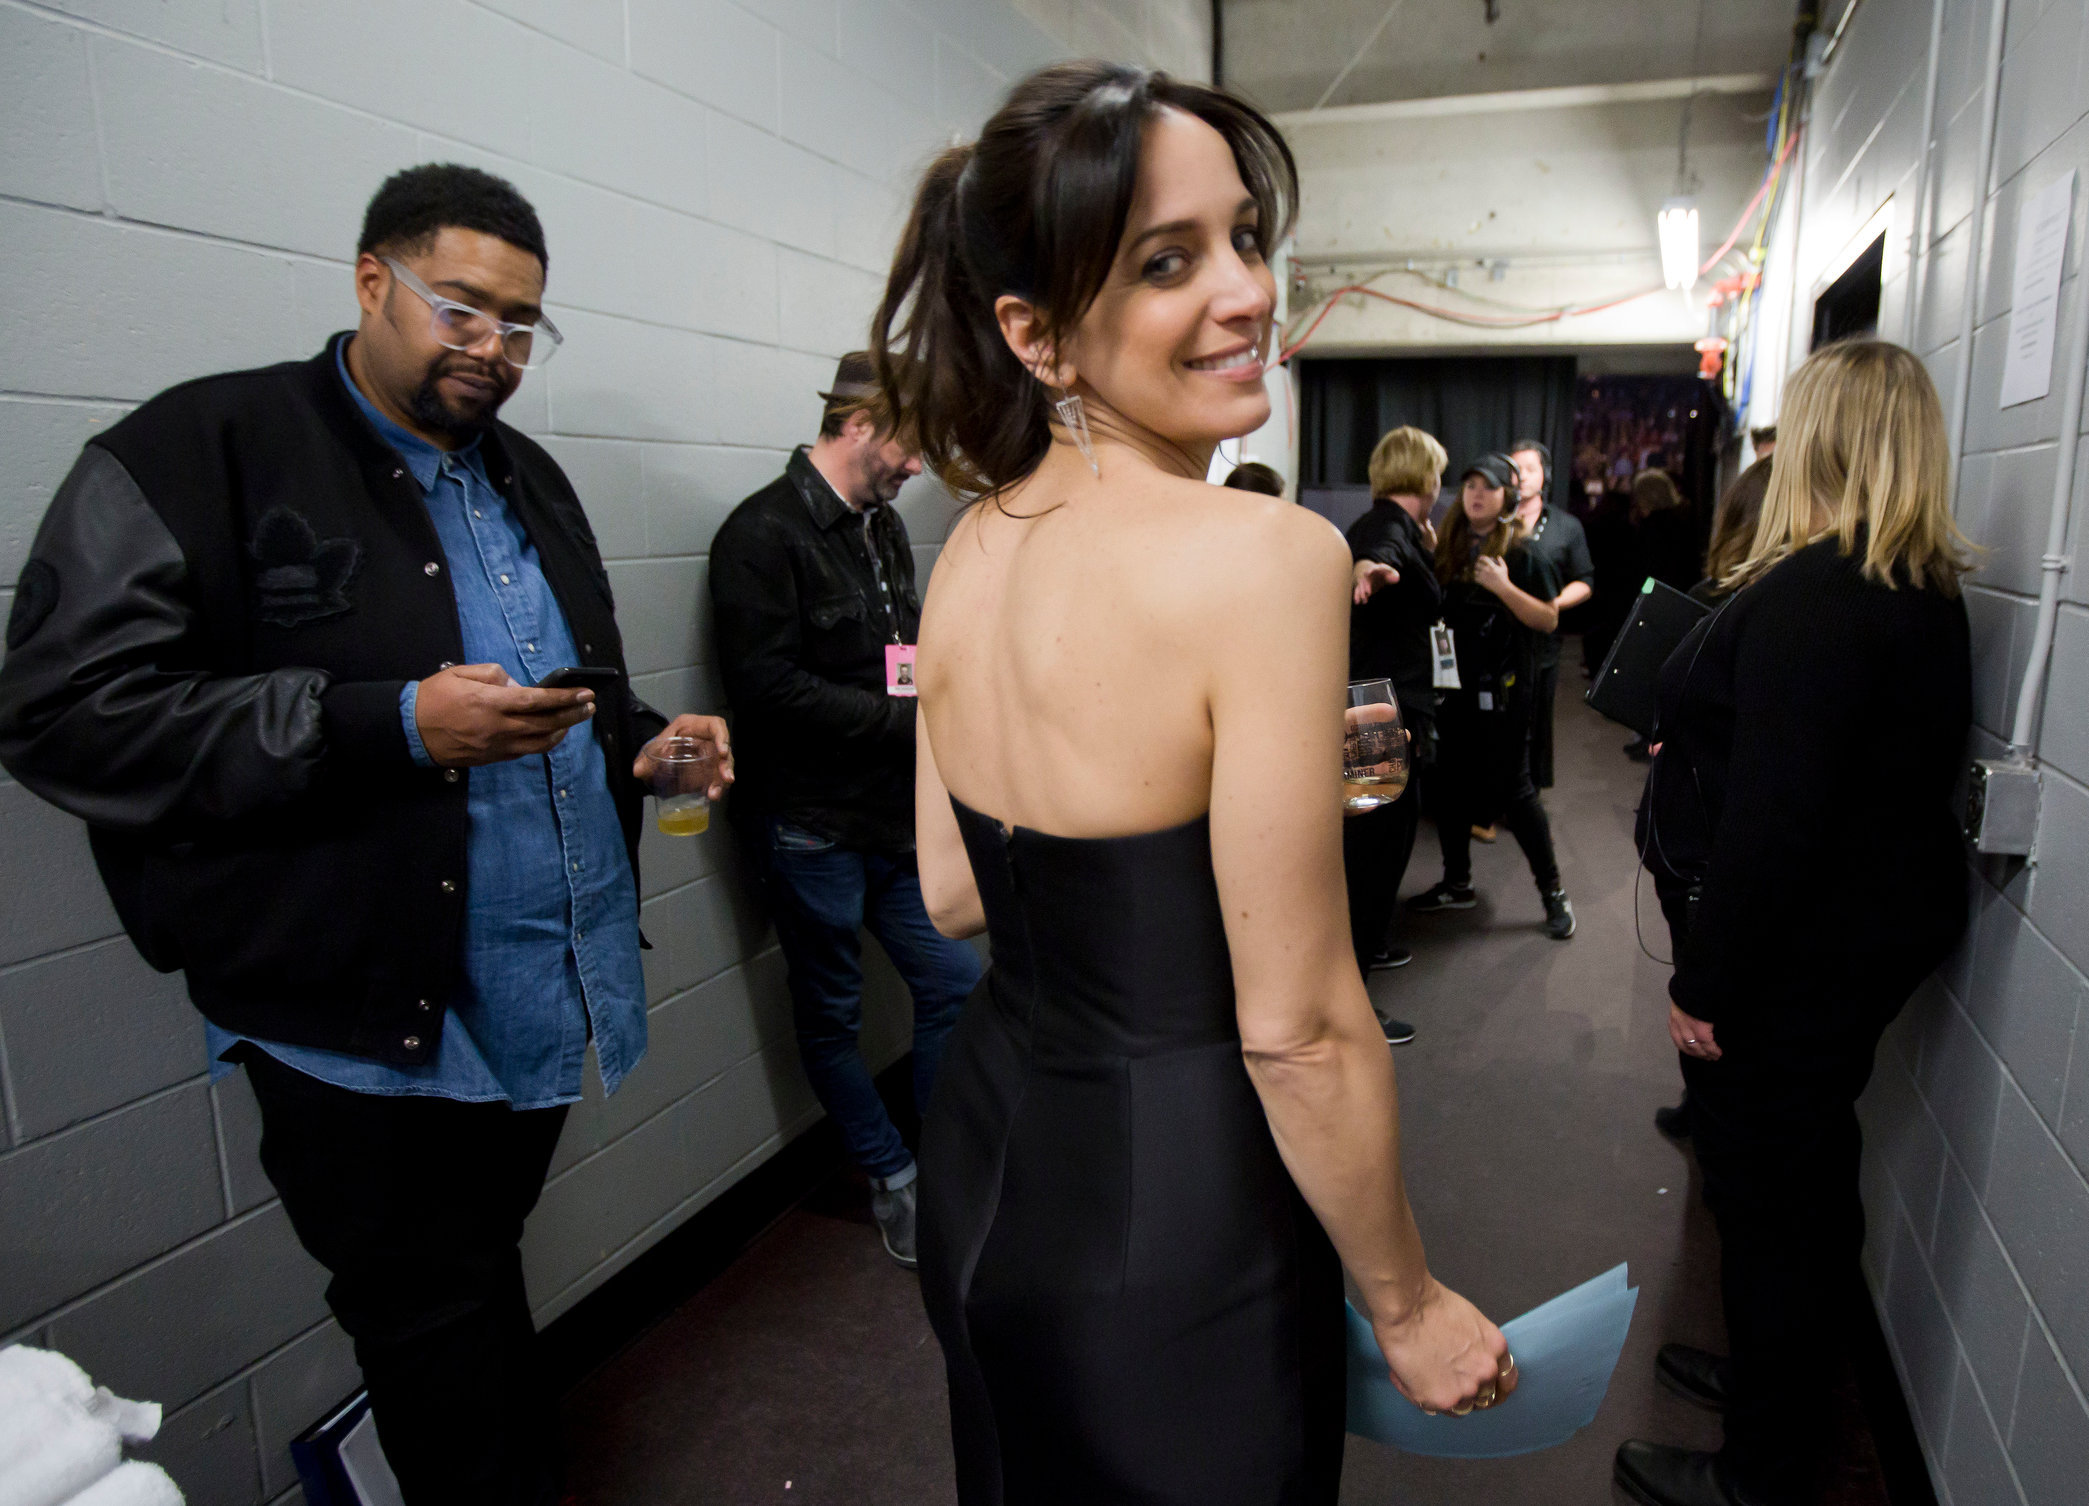 Junos_Behind_The_Scenes_054.JPG